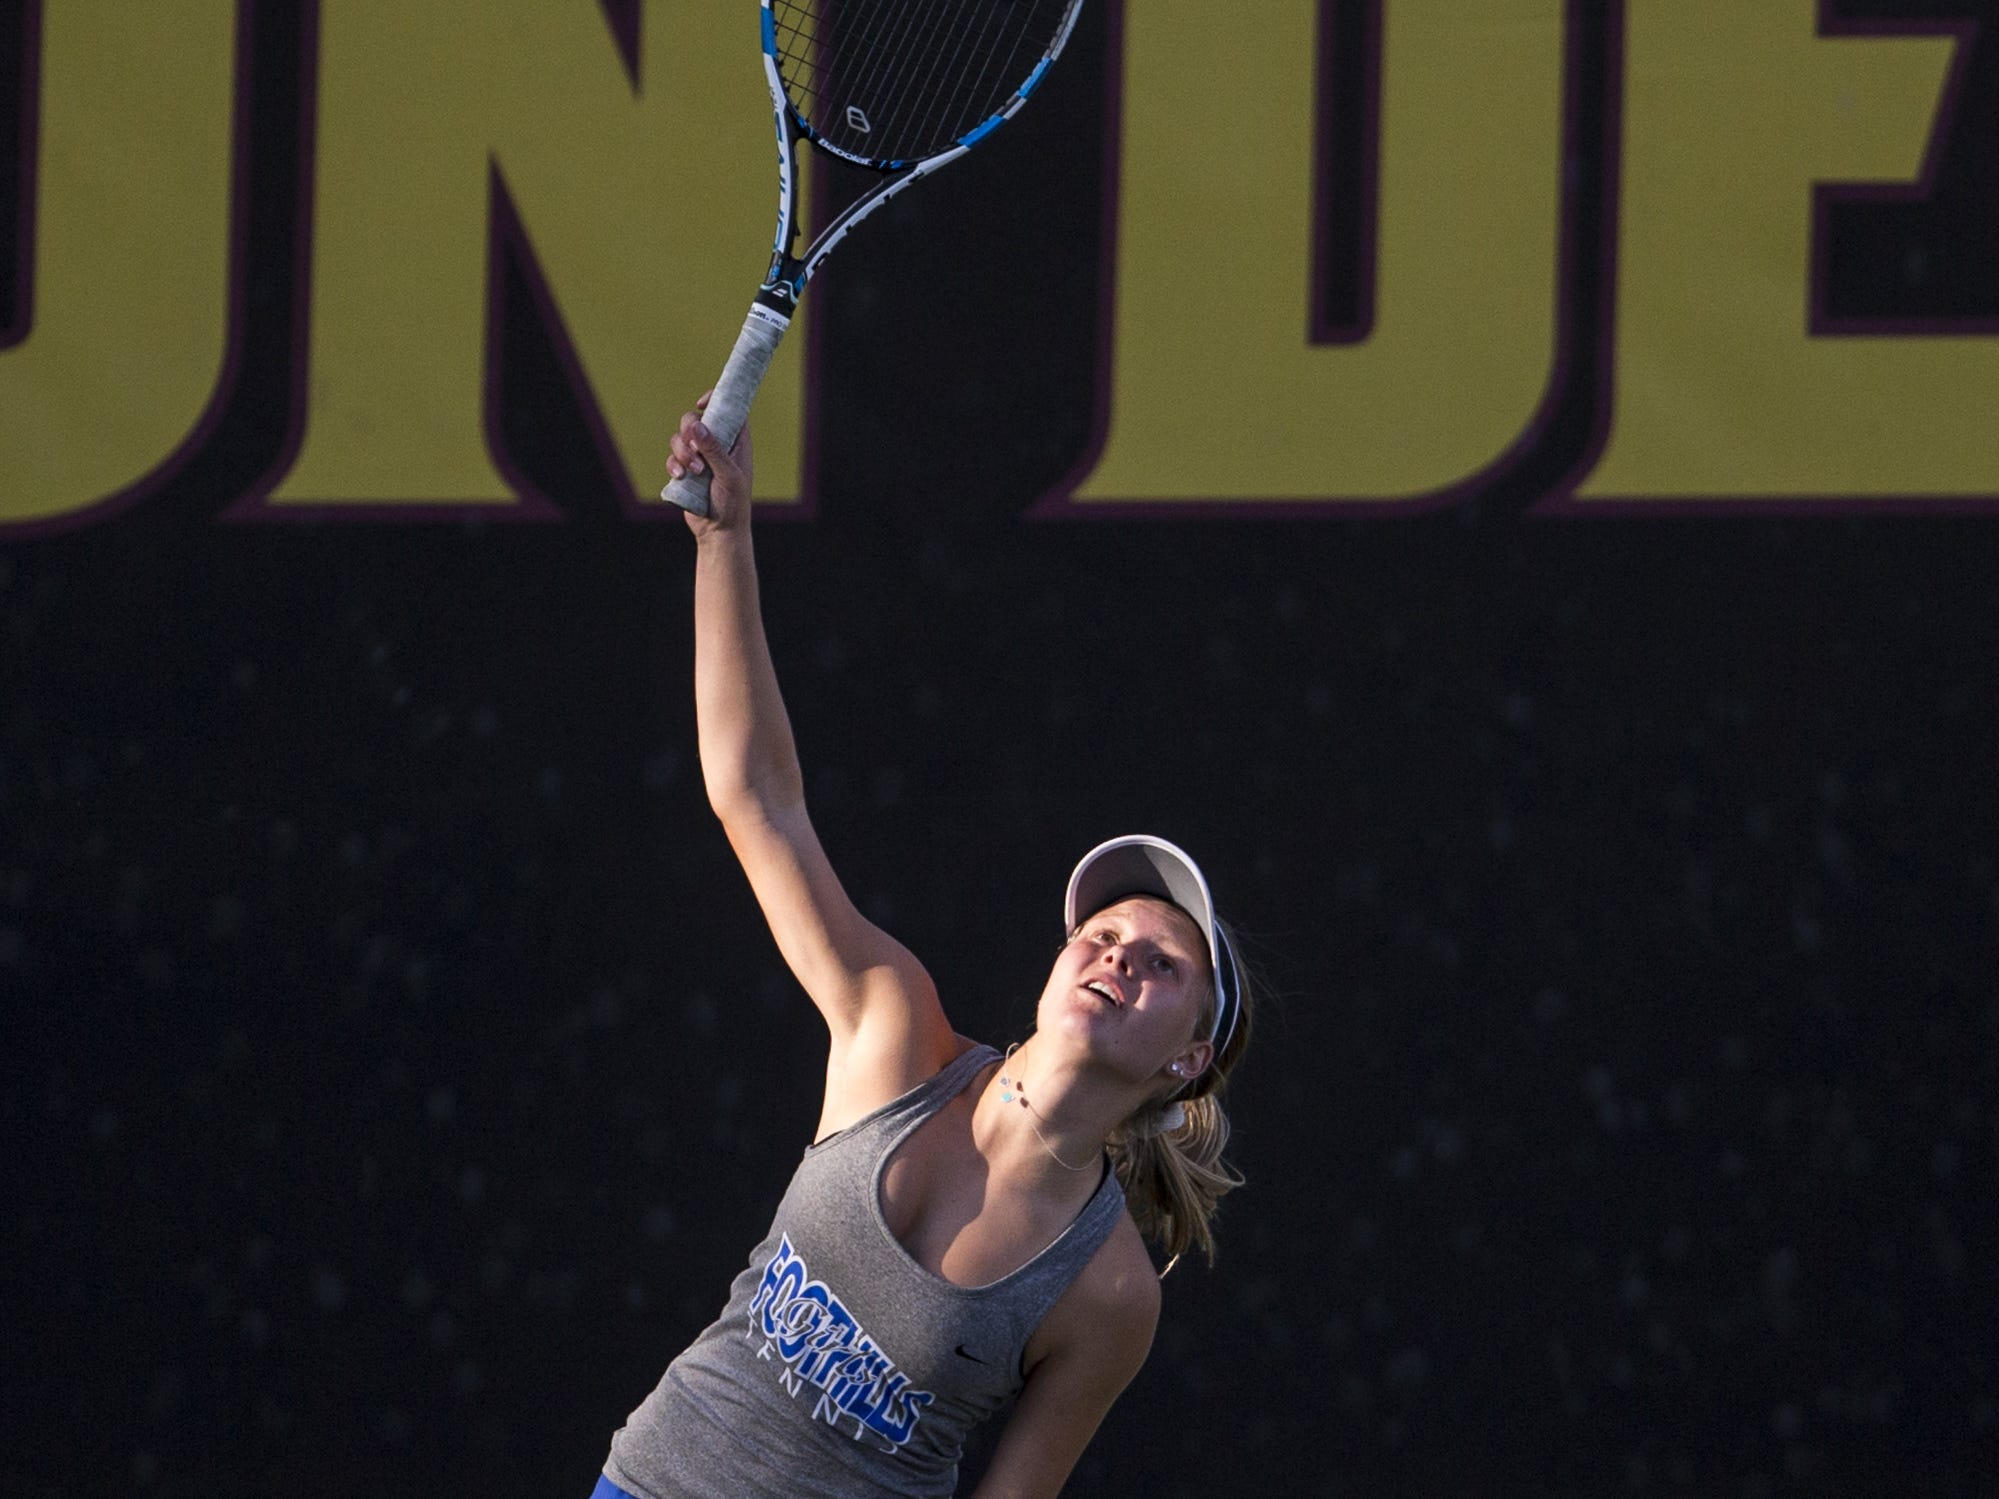 Catalina Foothills' Annabelle Mulick serves against Catalina Foothills' Emily Flowers during the Division II Girls Tennis Singles State Championship on Monday, April 29, 2019, at Whiteman Tennis Center in Tempe, Ariz.